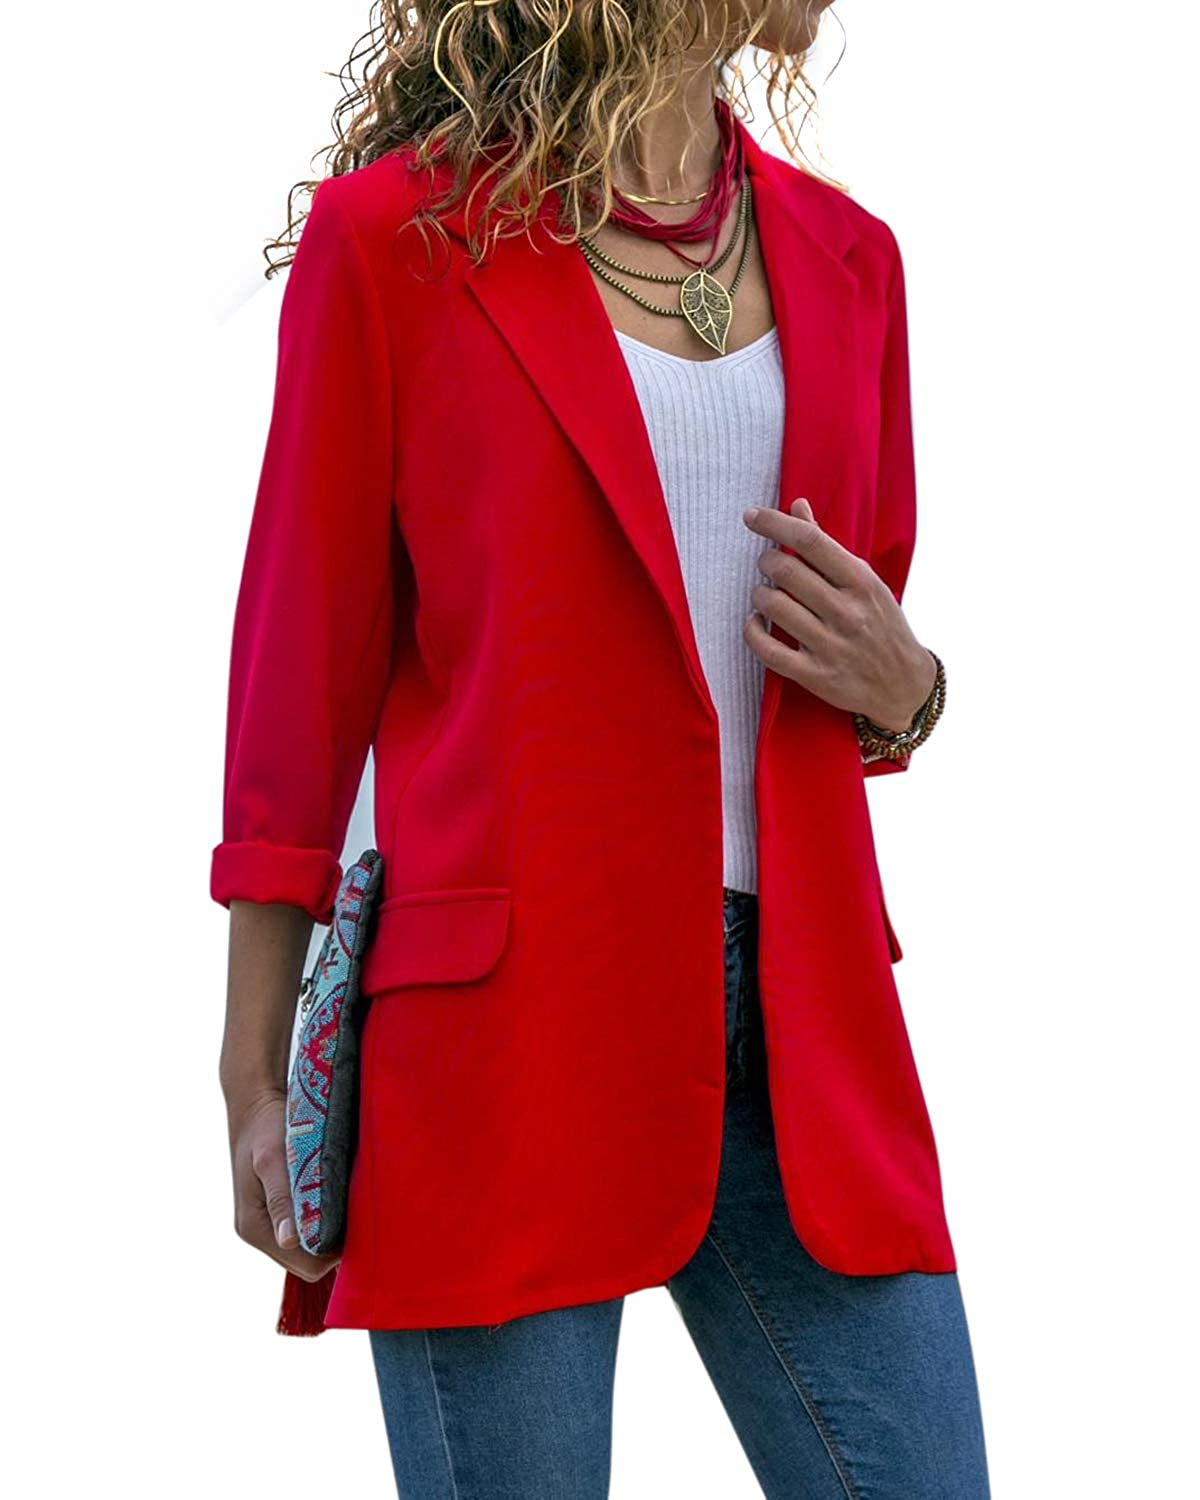 AUDATE Women Long Sleeve Open Front Suit Lapel Work Business Blazer Jacket Coat UK 6-14 AUDATE-60CA0030637